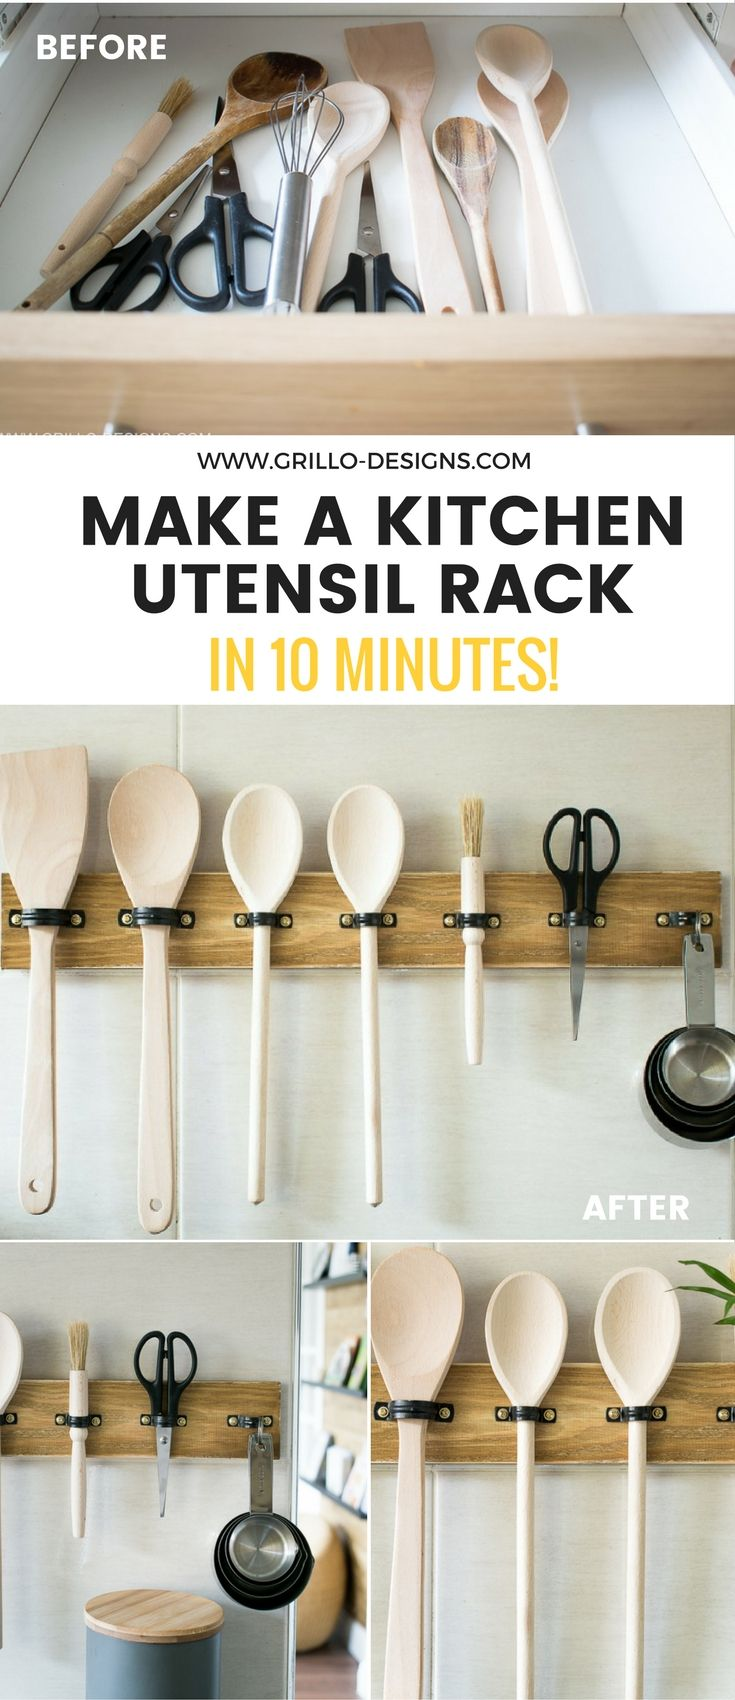 Organise Your Kitchen Cooking Essentials With This Super Easy DIY Utensil  Rack Tutorial. You Can